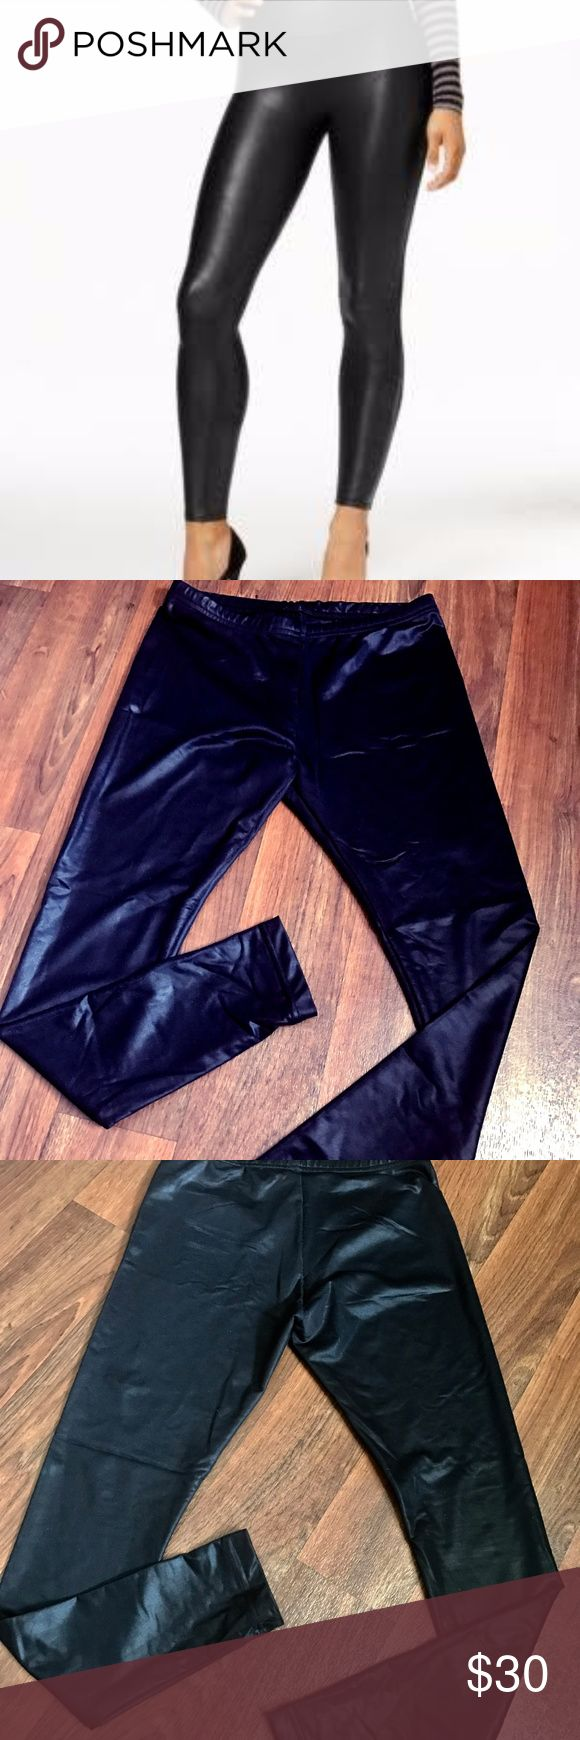 American Apparel Leather Stretch Leggings Excellent Condition, never worn, extremely stretchy, and can fit from Medium-XLarge sizes, are made for smaller legs. No damage at all.   Size: L  Color: Midnight Black  Smoke free home  Pet (Goldendoodle) Friendly home American Apparel Pants Leggings